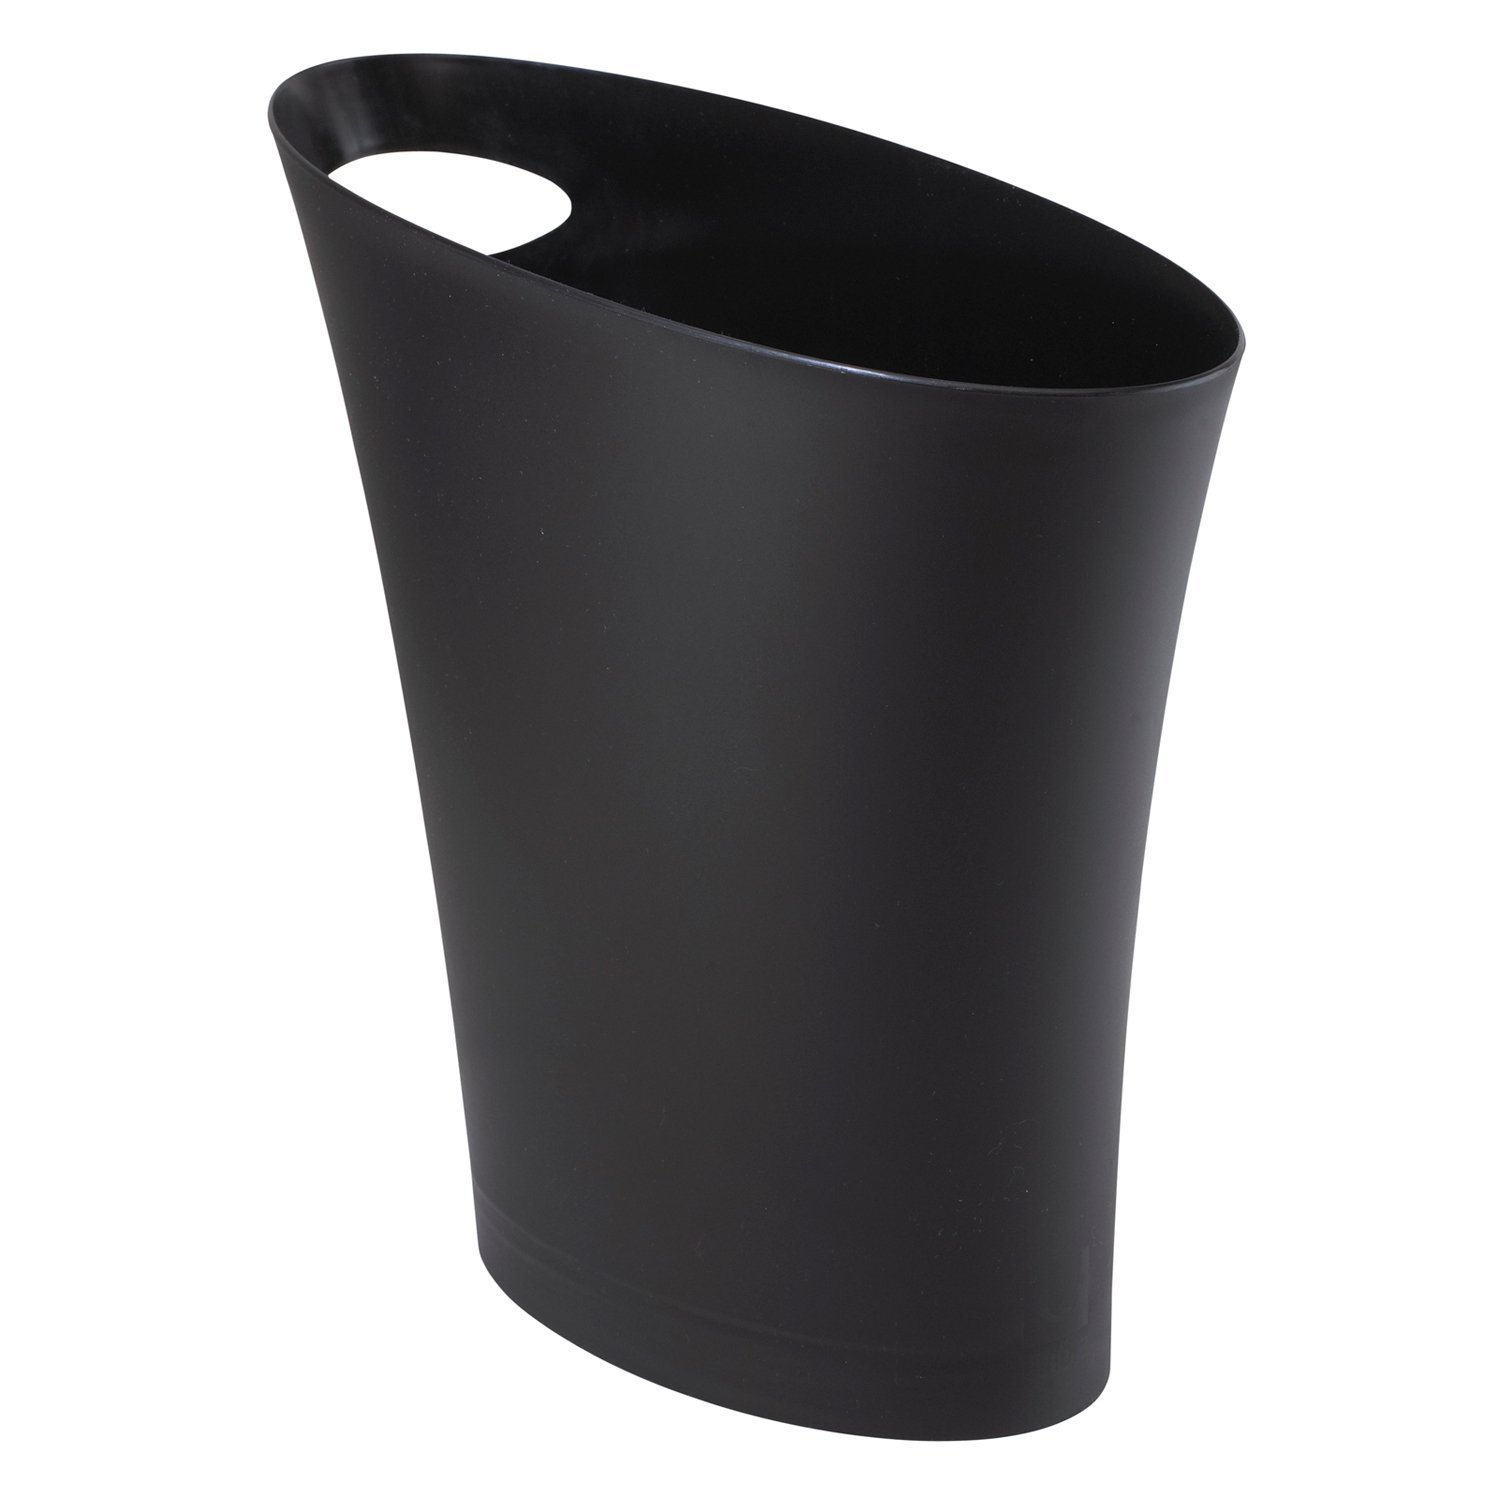 Umbra Skinny Sleek & Stylish Bathroom Trash, Small Garbage Can Wastebasket for Narrow Spaces at Home or Office, 2 Gallon Capacity, Black